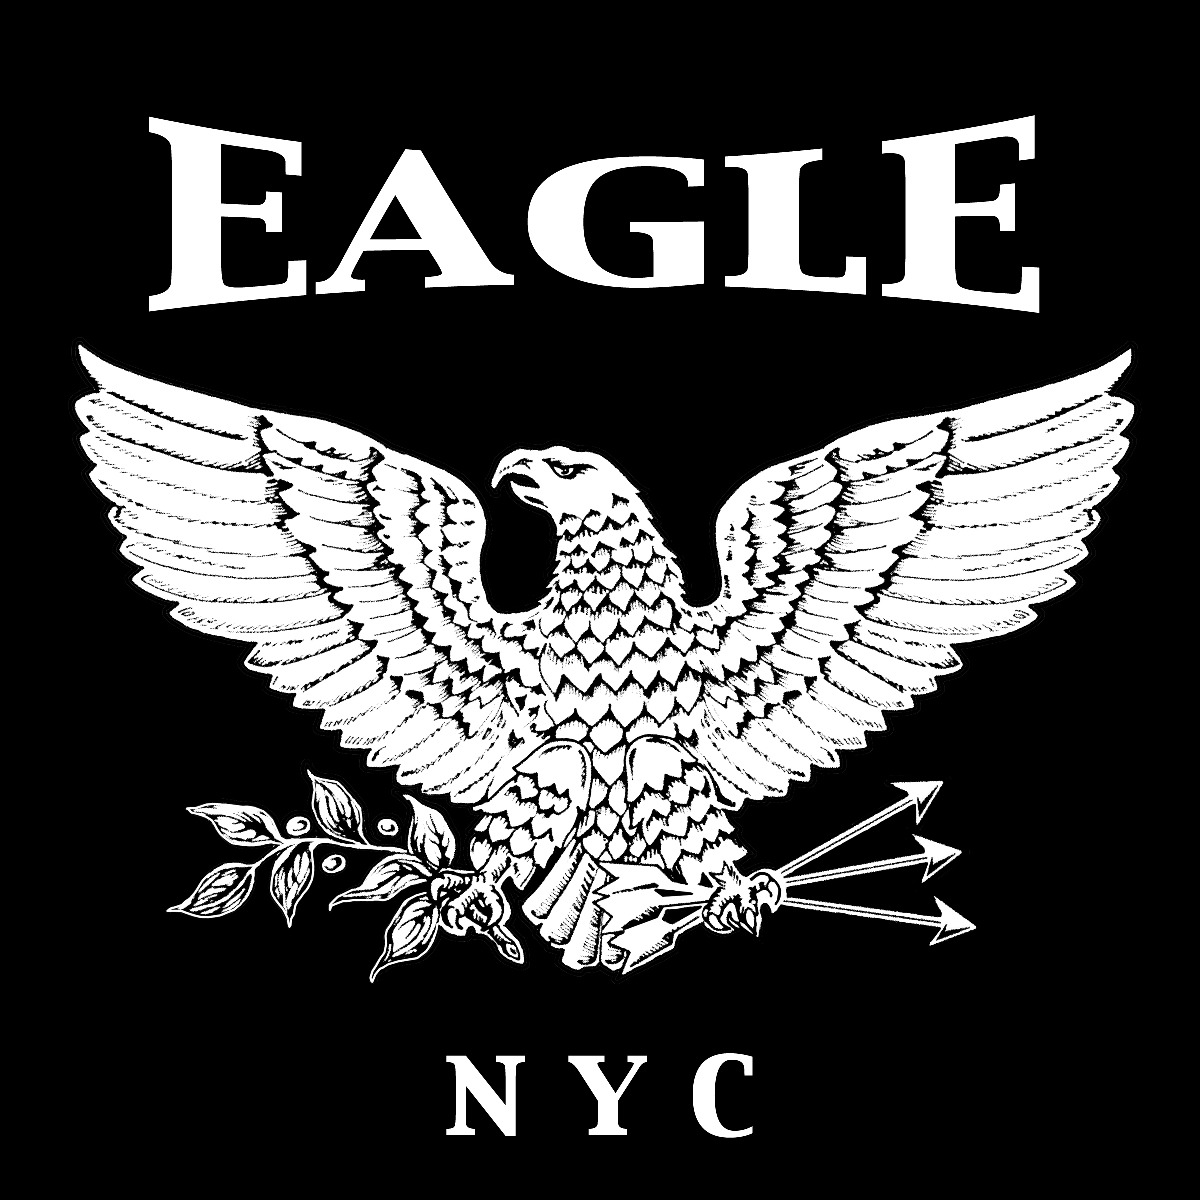 The Eagle NYC